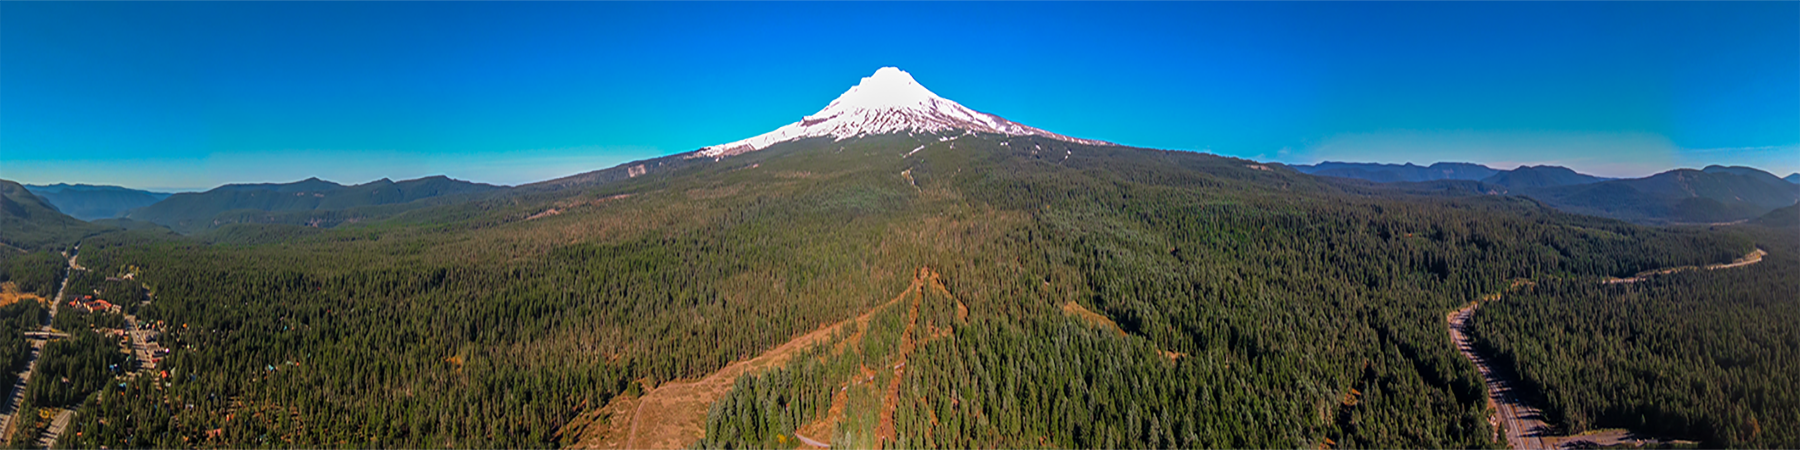 Karma Drone HERO6 Aerial Panorama Stitched From Video Frames